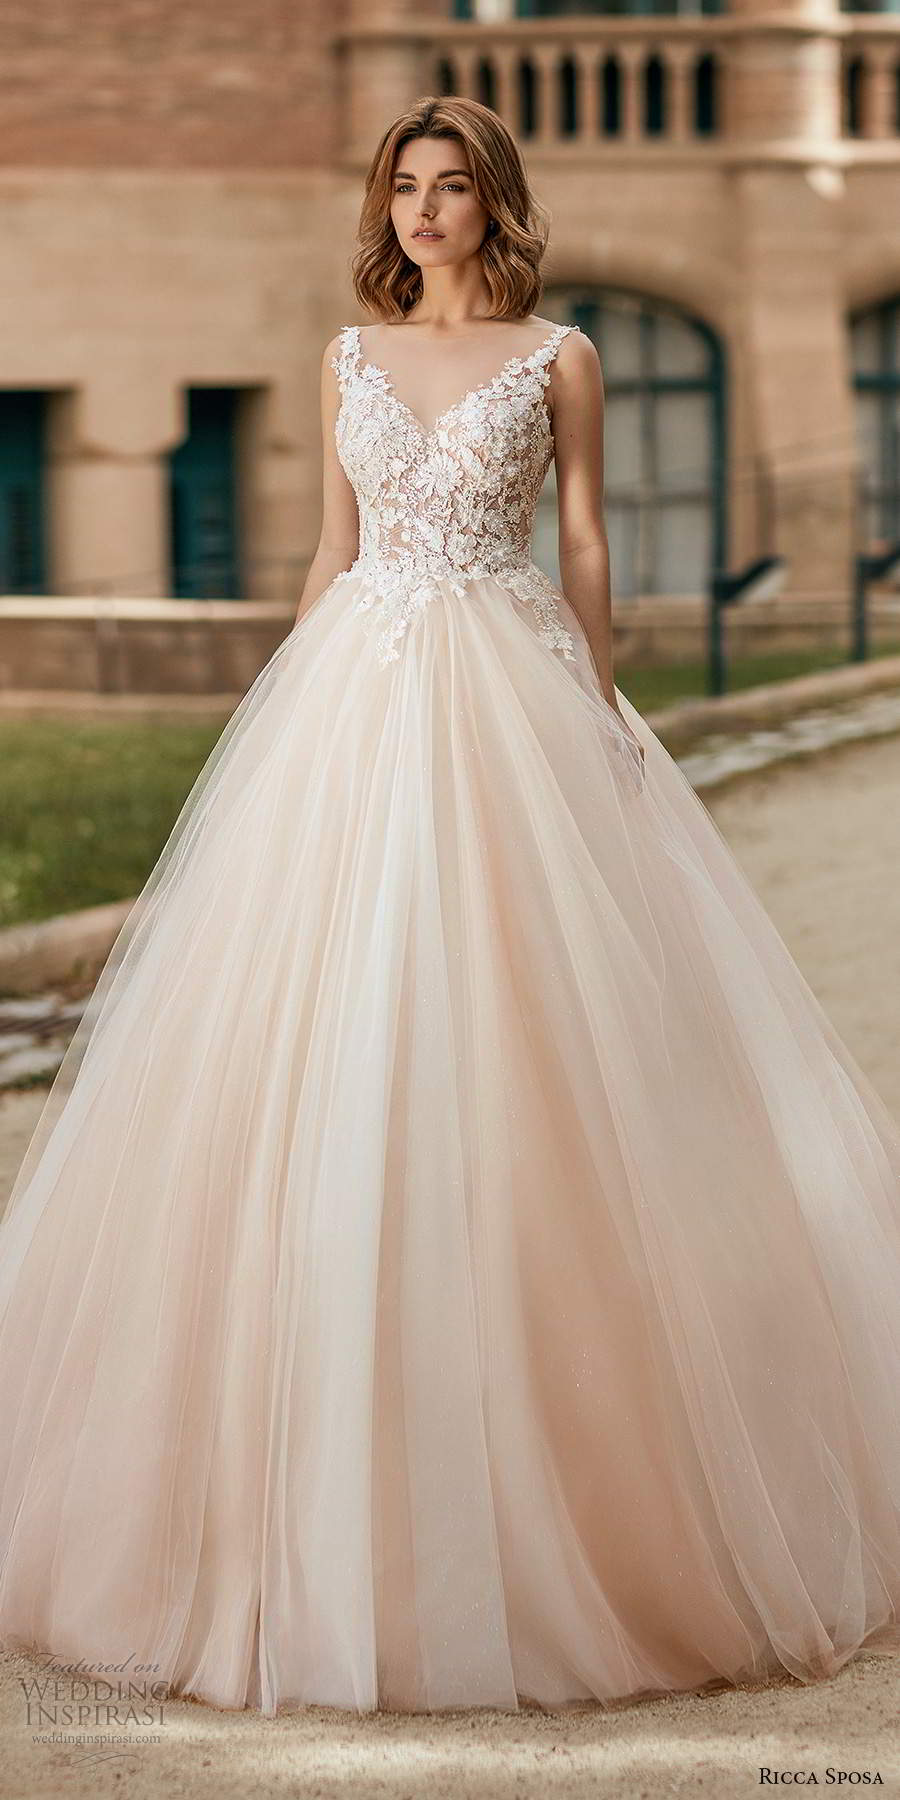 ricca sposa 2020 barcelona bridal sleeveless straps sweetheart neckline heavily embellished bodice pink a line ball gown wedding dress corset back chapel train (11) mv